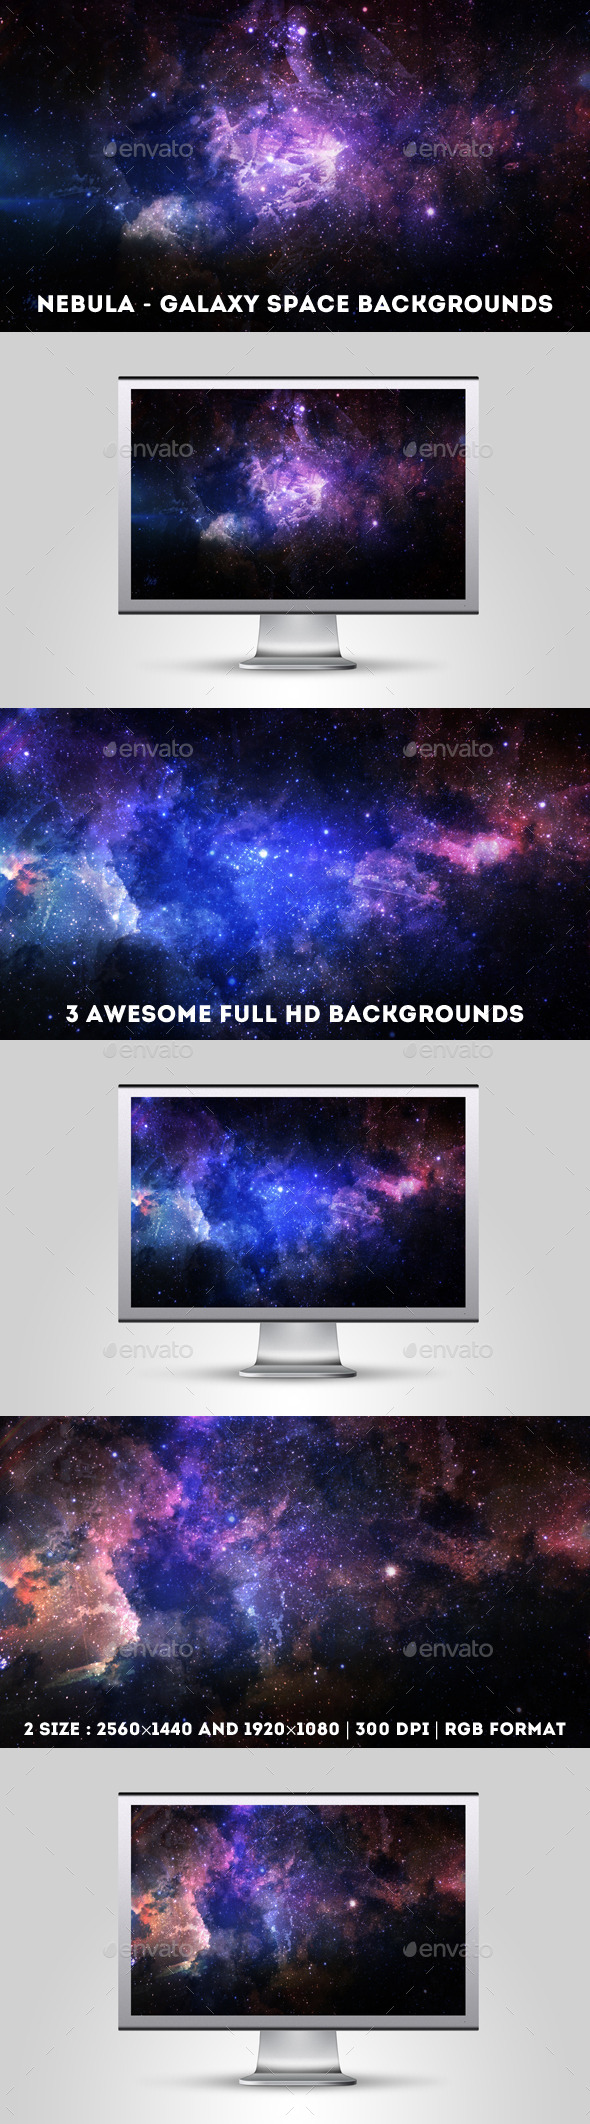 GraphicRiver Nebula Galaxy Space Backgrounds 10997587